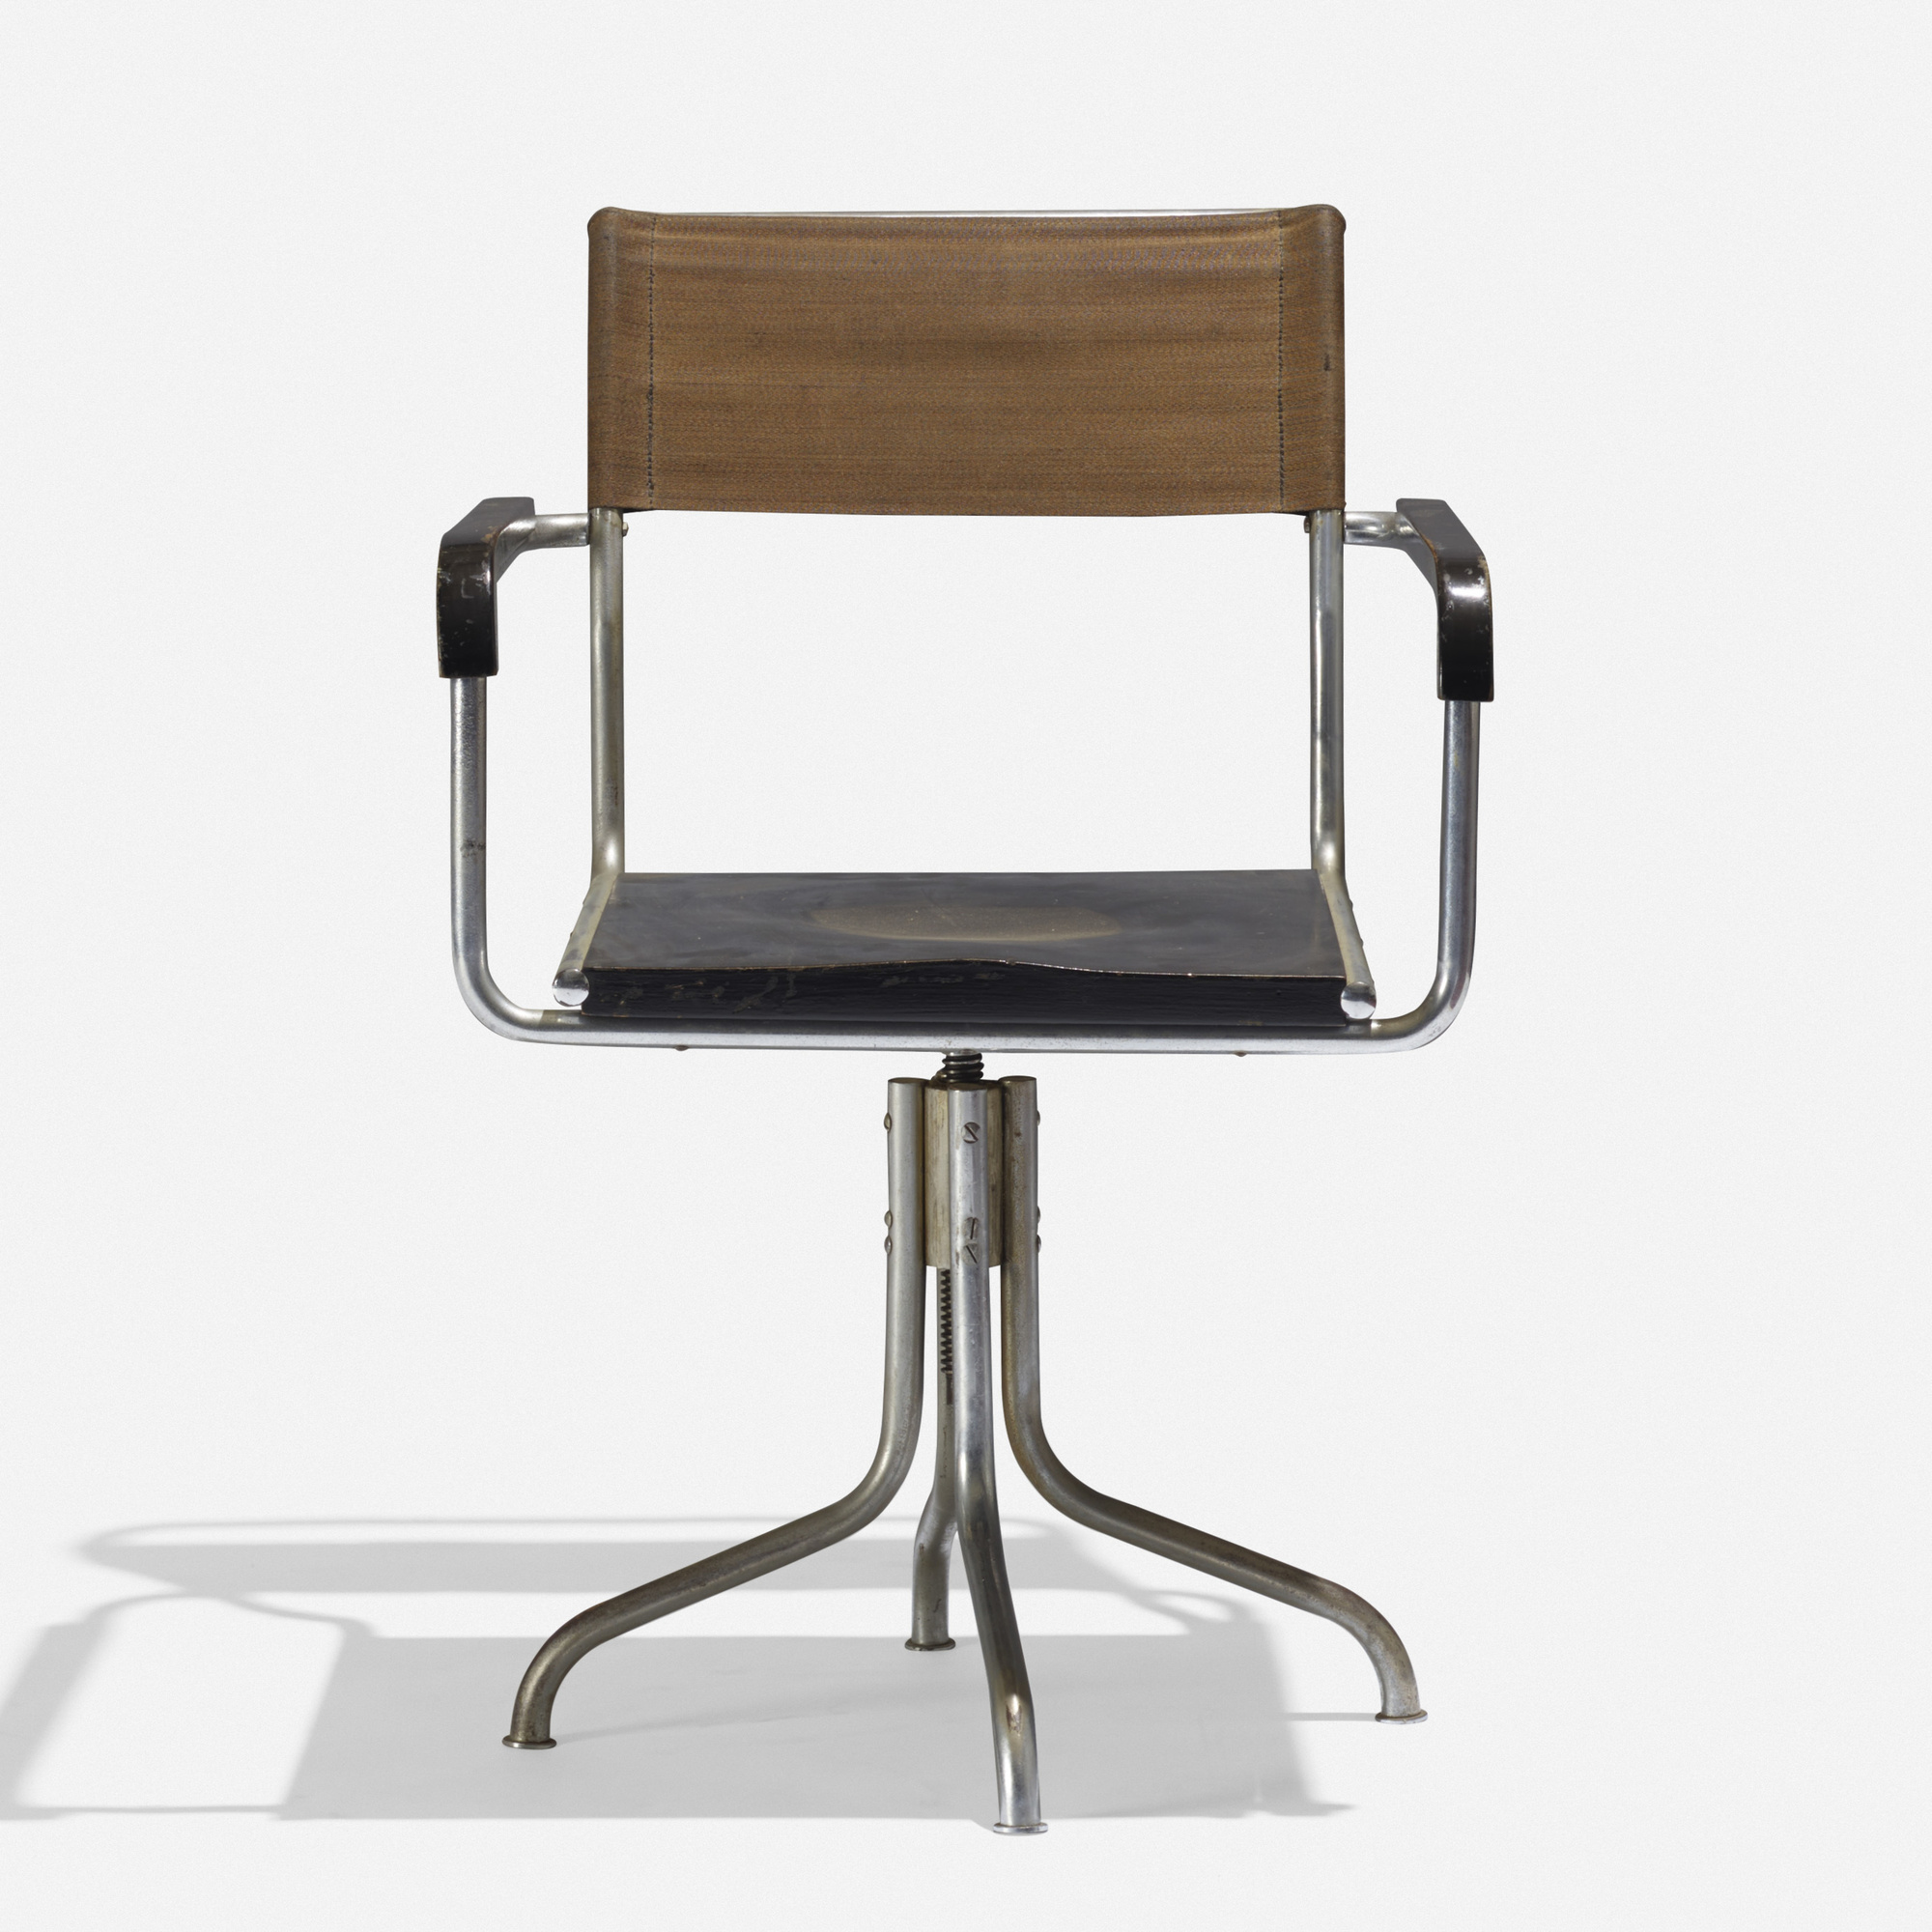 Marcel Breuer 131: Marcel Breuer, Adjustable Armchair, Model B7a < International Style: The Boyd Collection, 7 November 2019 < Auctions | Wright: Auctions Of Art And Design